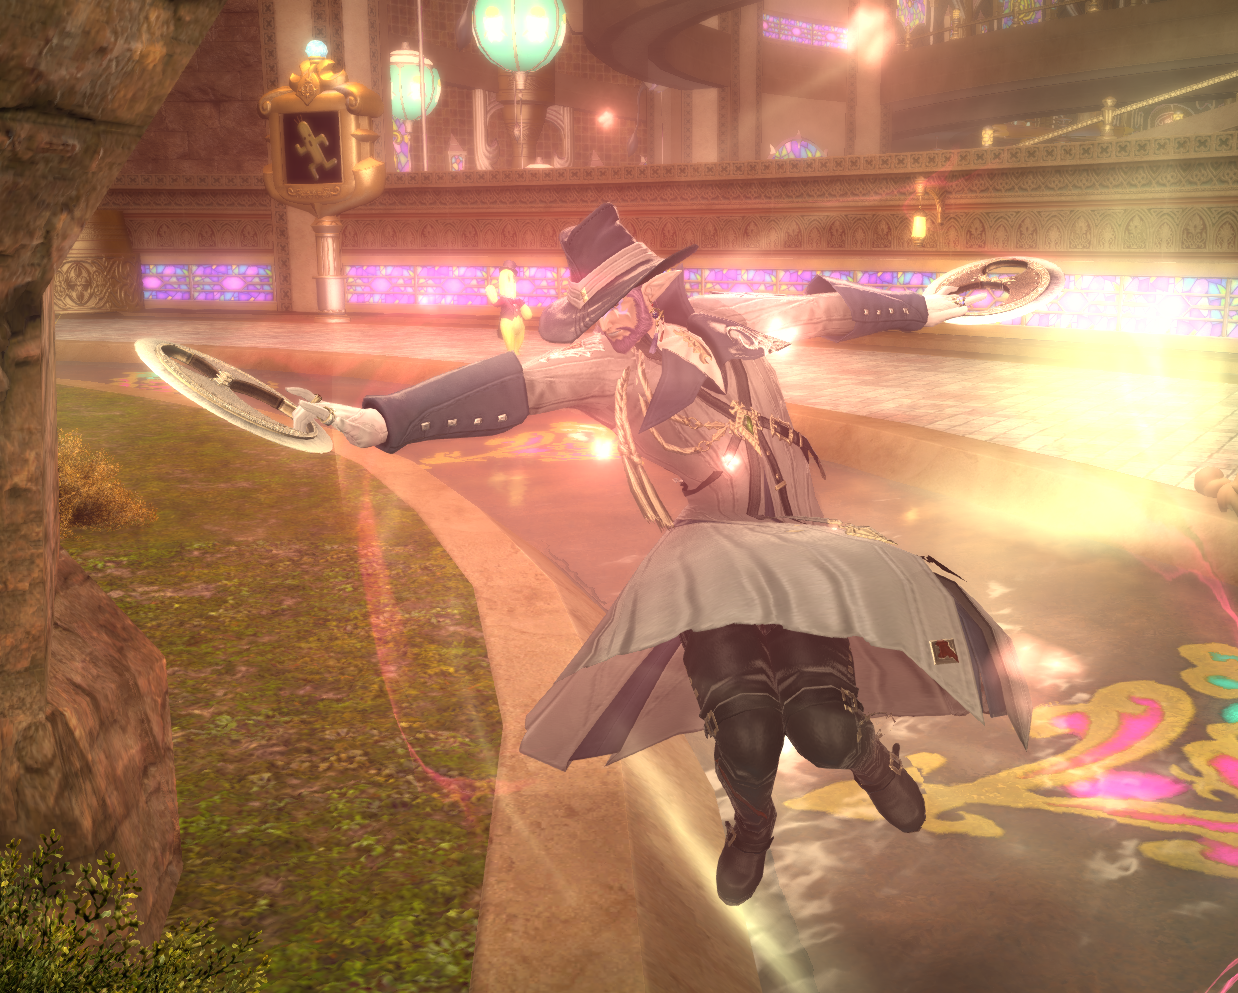 Rohiaux in Shire gear, performing the Dancer move Avant